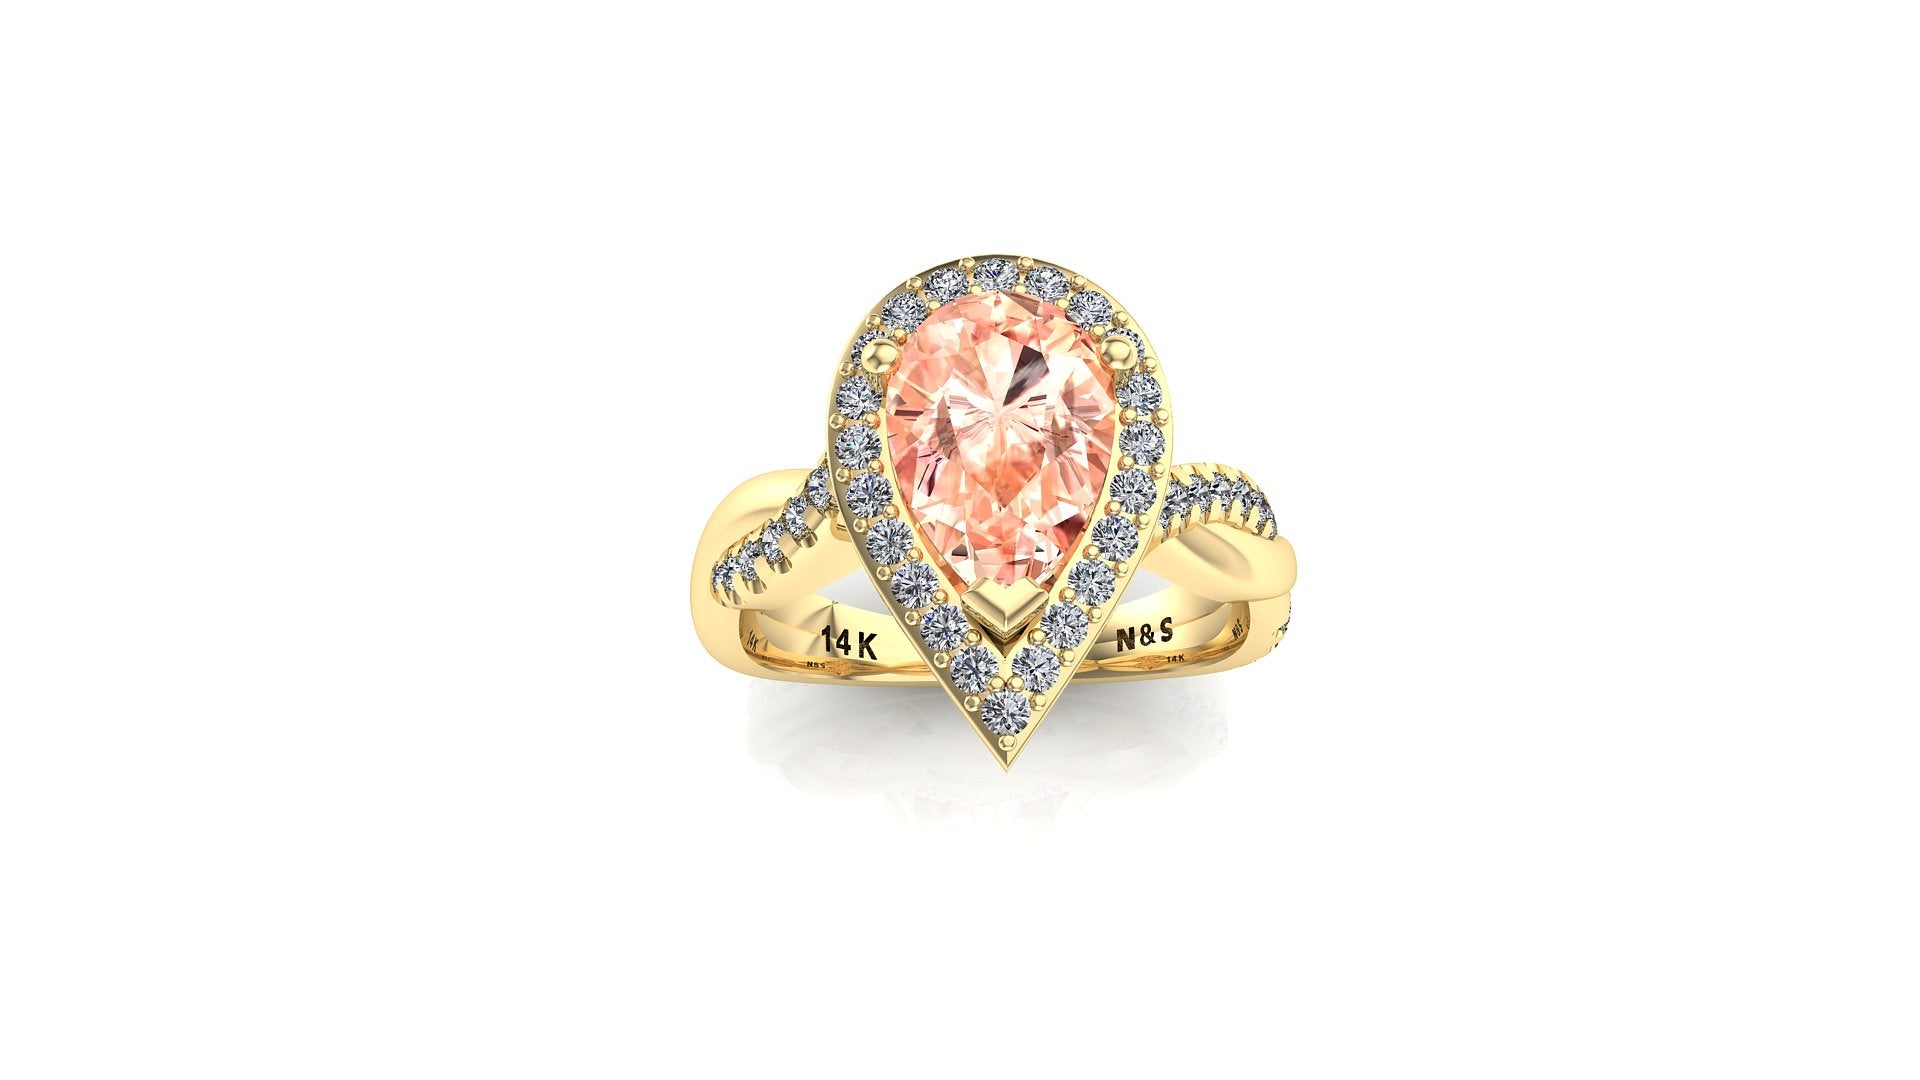 10x7mm (1.80ct) Single Diamond Twist Pear Cut Morganite Diamond Halo 14K Gold Ring BSAQ016